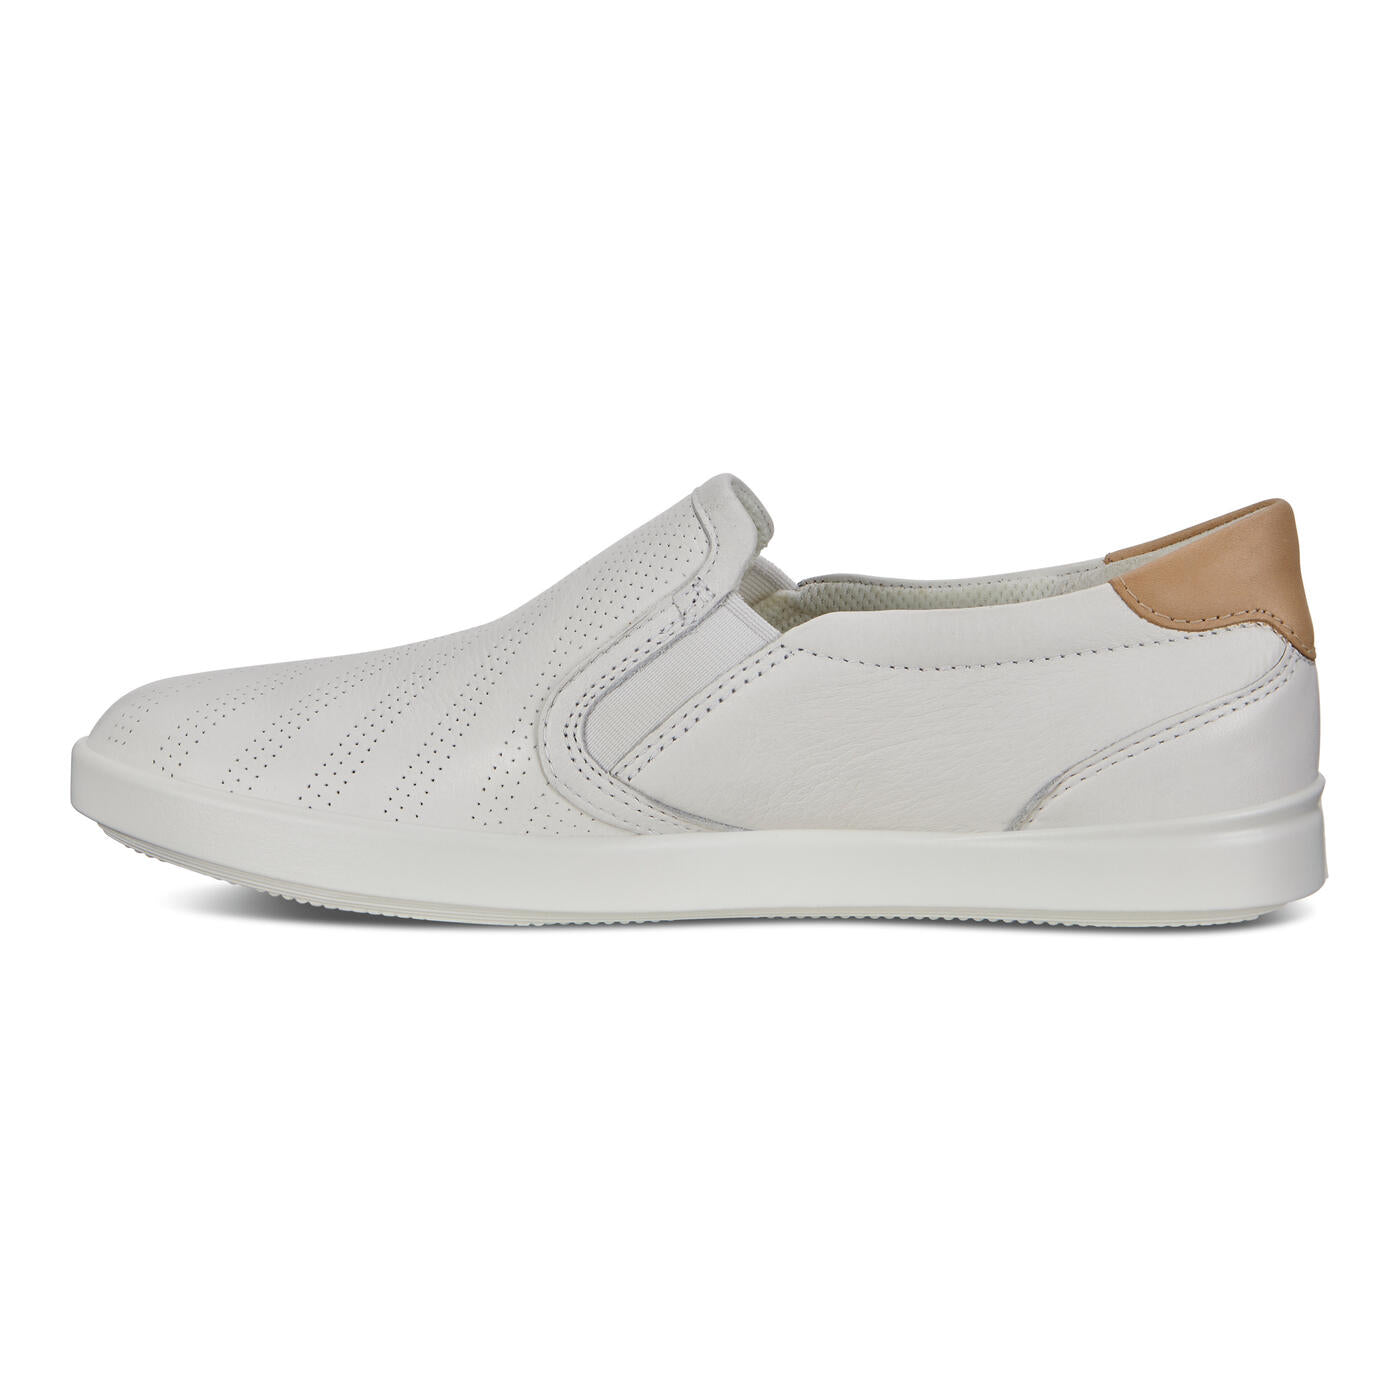 Ecco Ladies Leisure 205043 - White/Powder